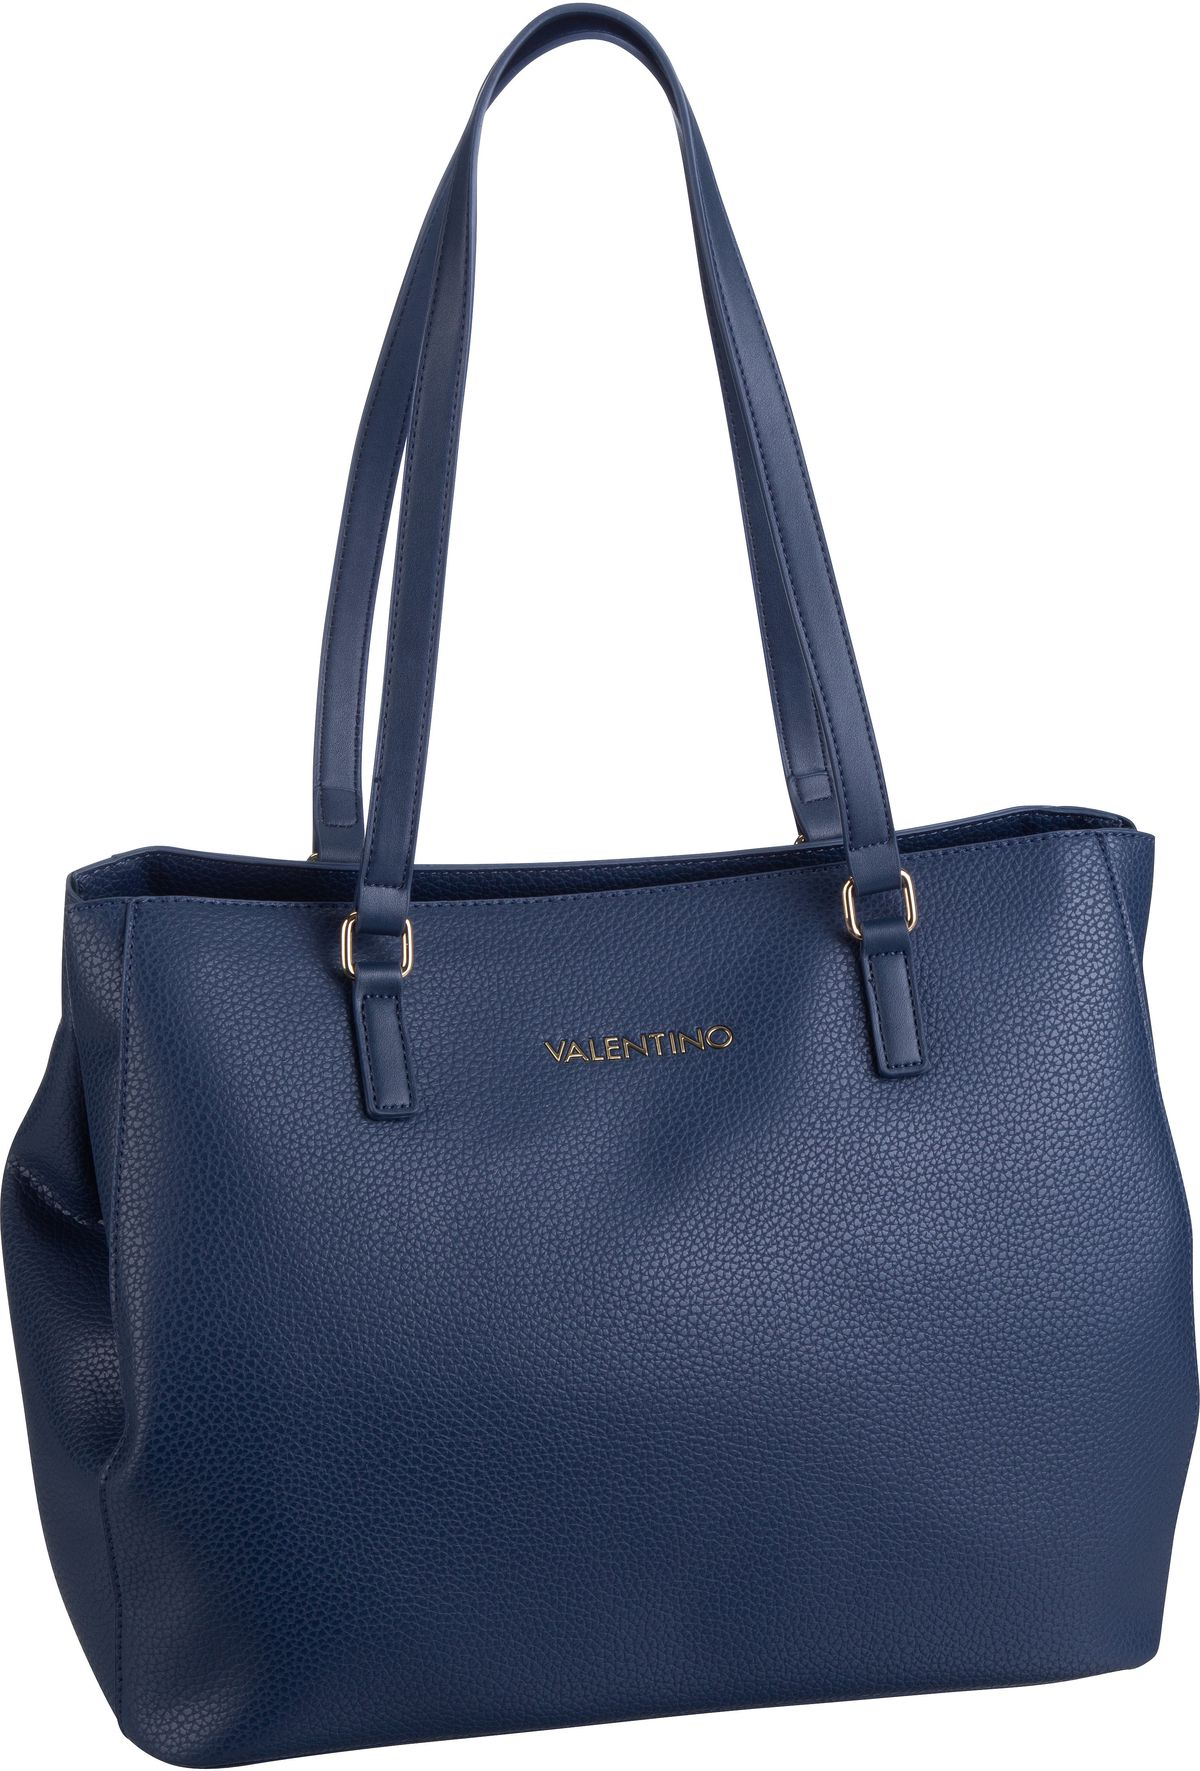 Bags Shopper Superman Shopping U801 Navy